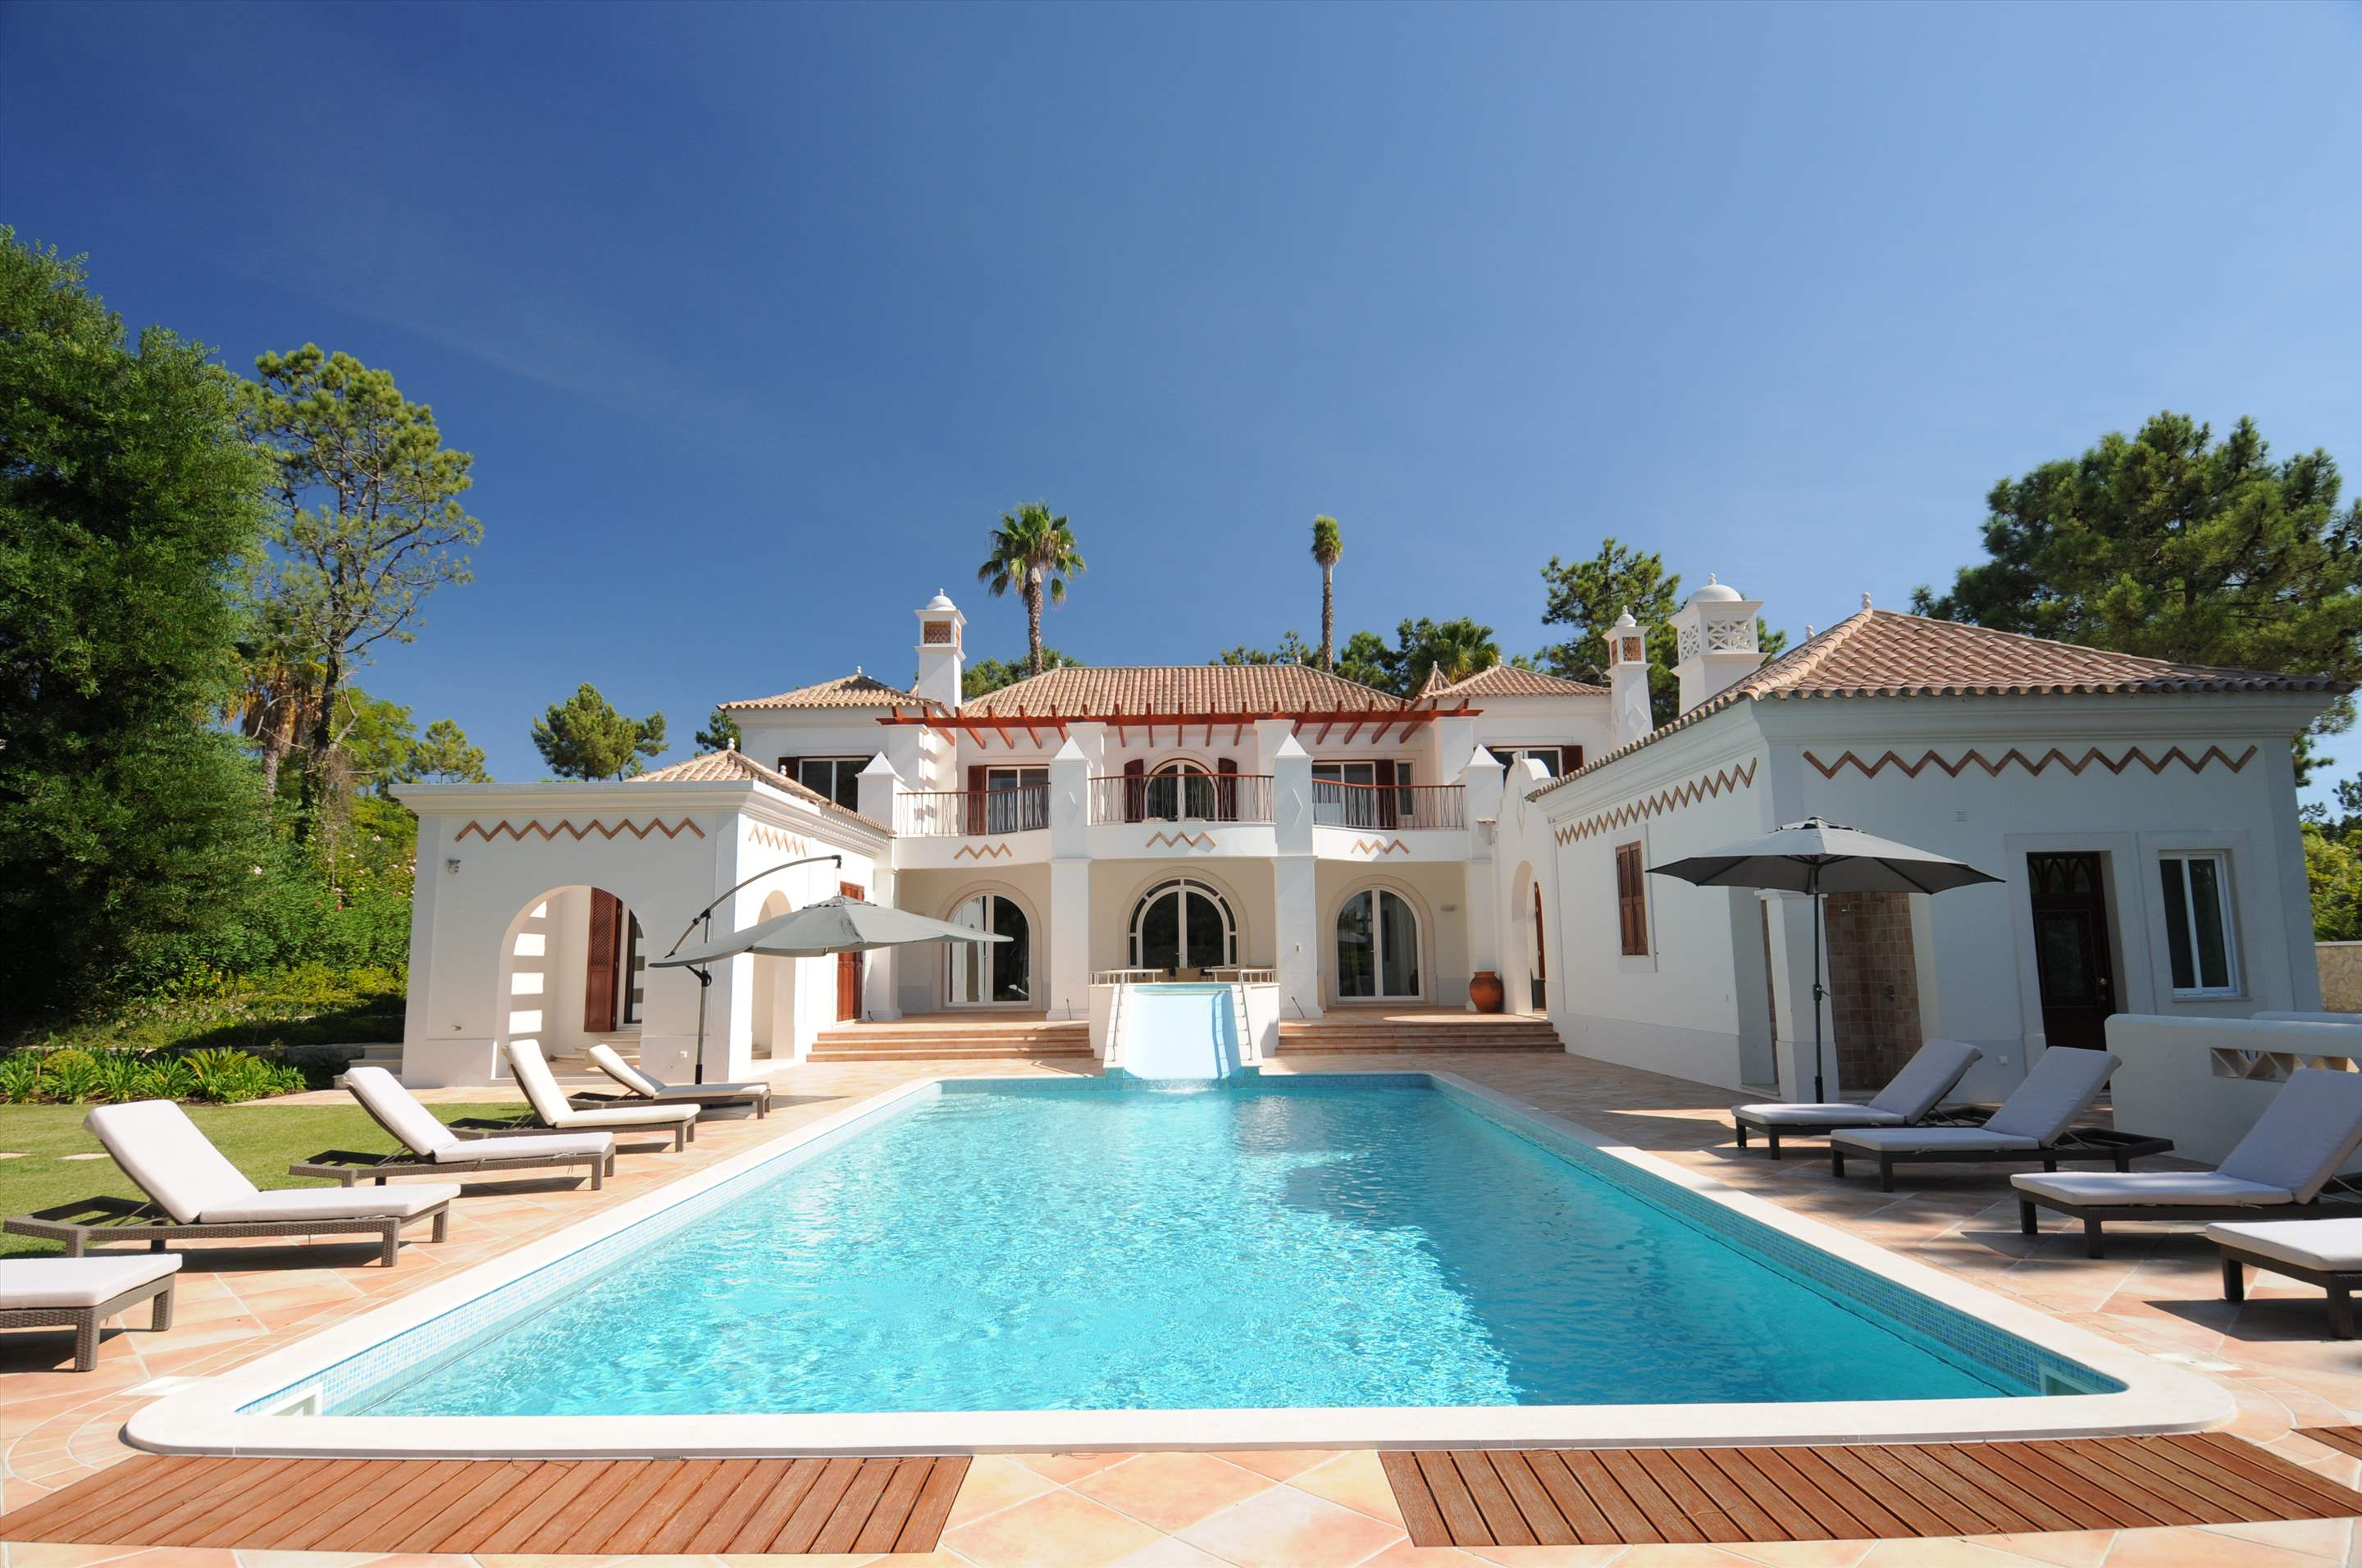 Villa Lantana 2, Main house & Annexe, 6 bedrooms, 6 bedroom villa in Quinta do Lago, Algarve